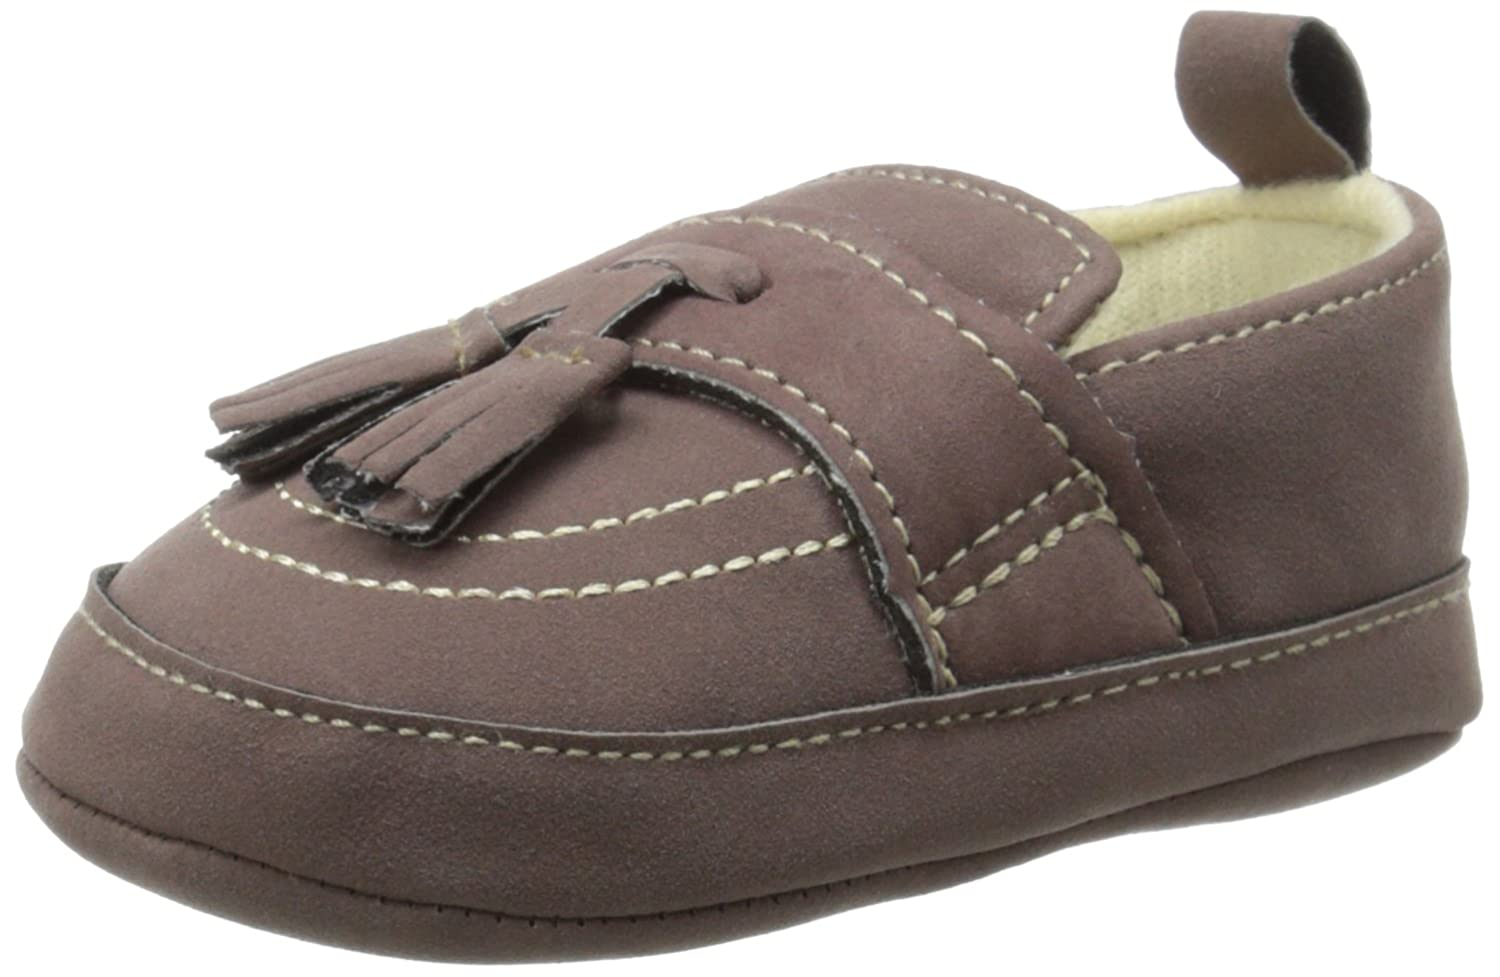 Little Me Suede Tassel Loafer Loafer (Infant), Brown, 9-12 Months M US Infant